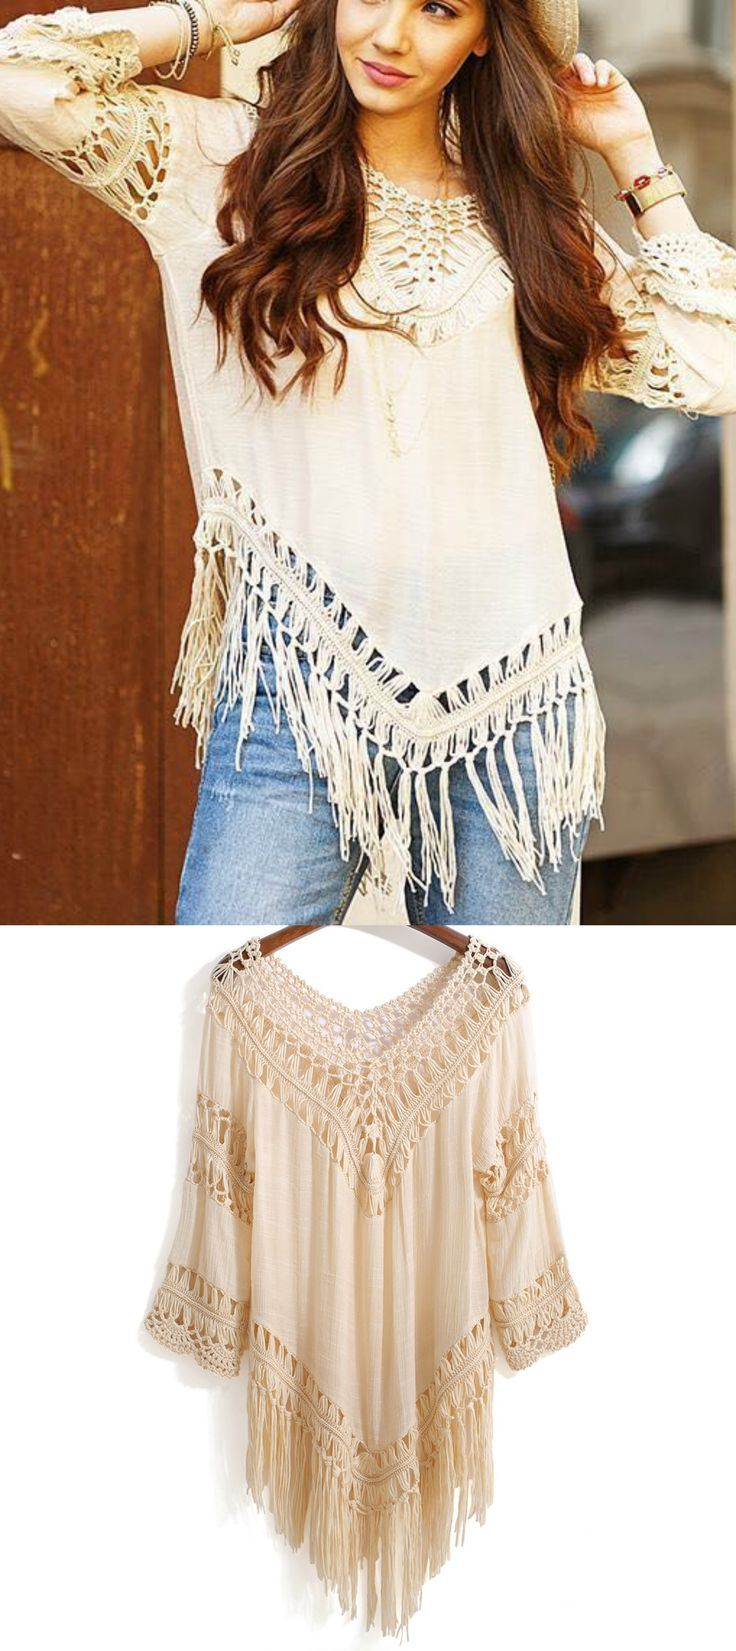 31 Bohemian Style Bedroom Interior Design: A Bohemian Fringe Blouse In Beige From Pasaboho